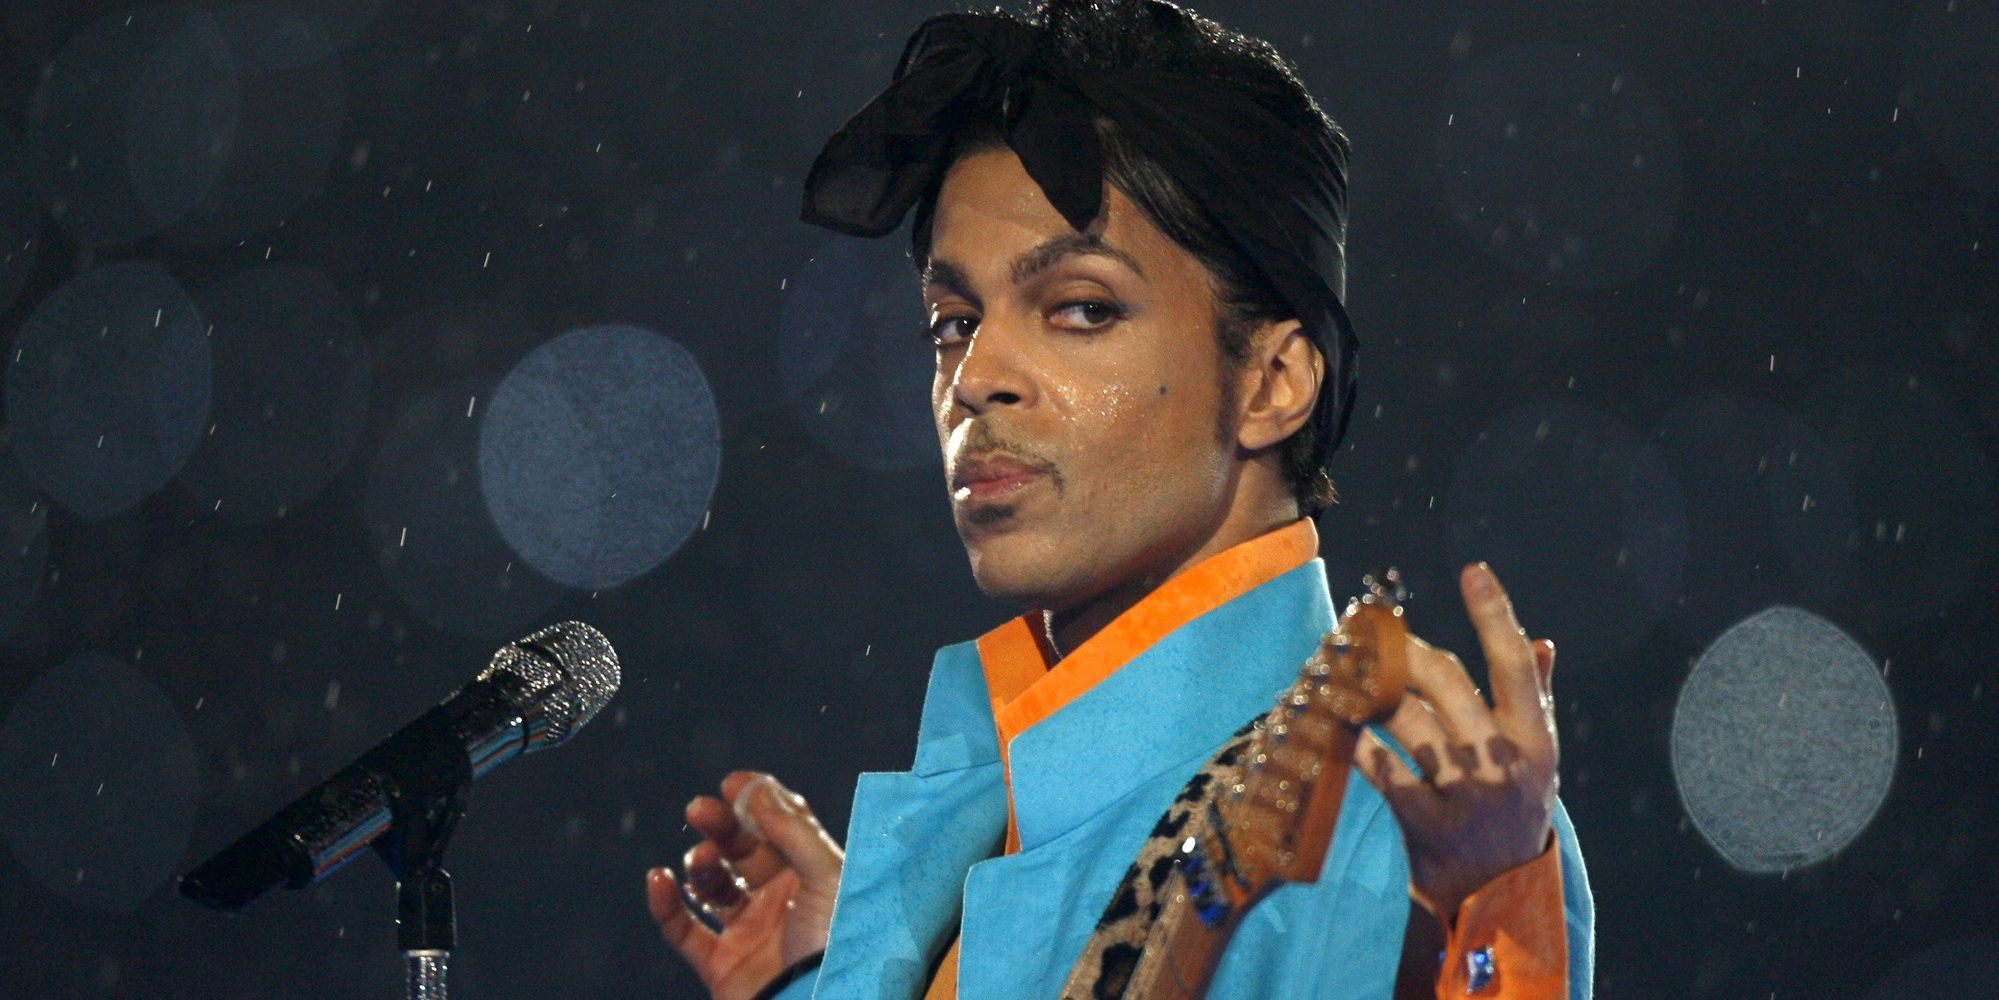 Apparently Prince Left Behind Nearly A Million Dollars In Gold Bars